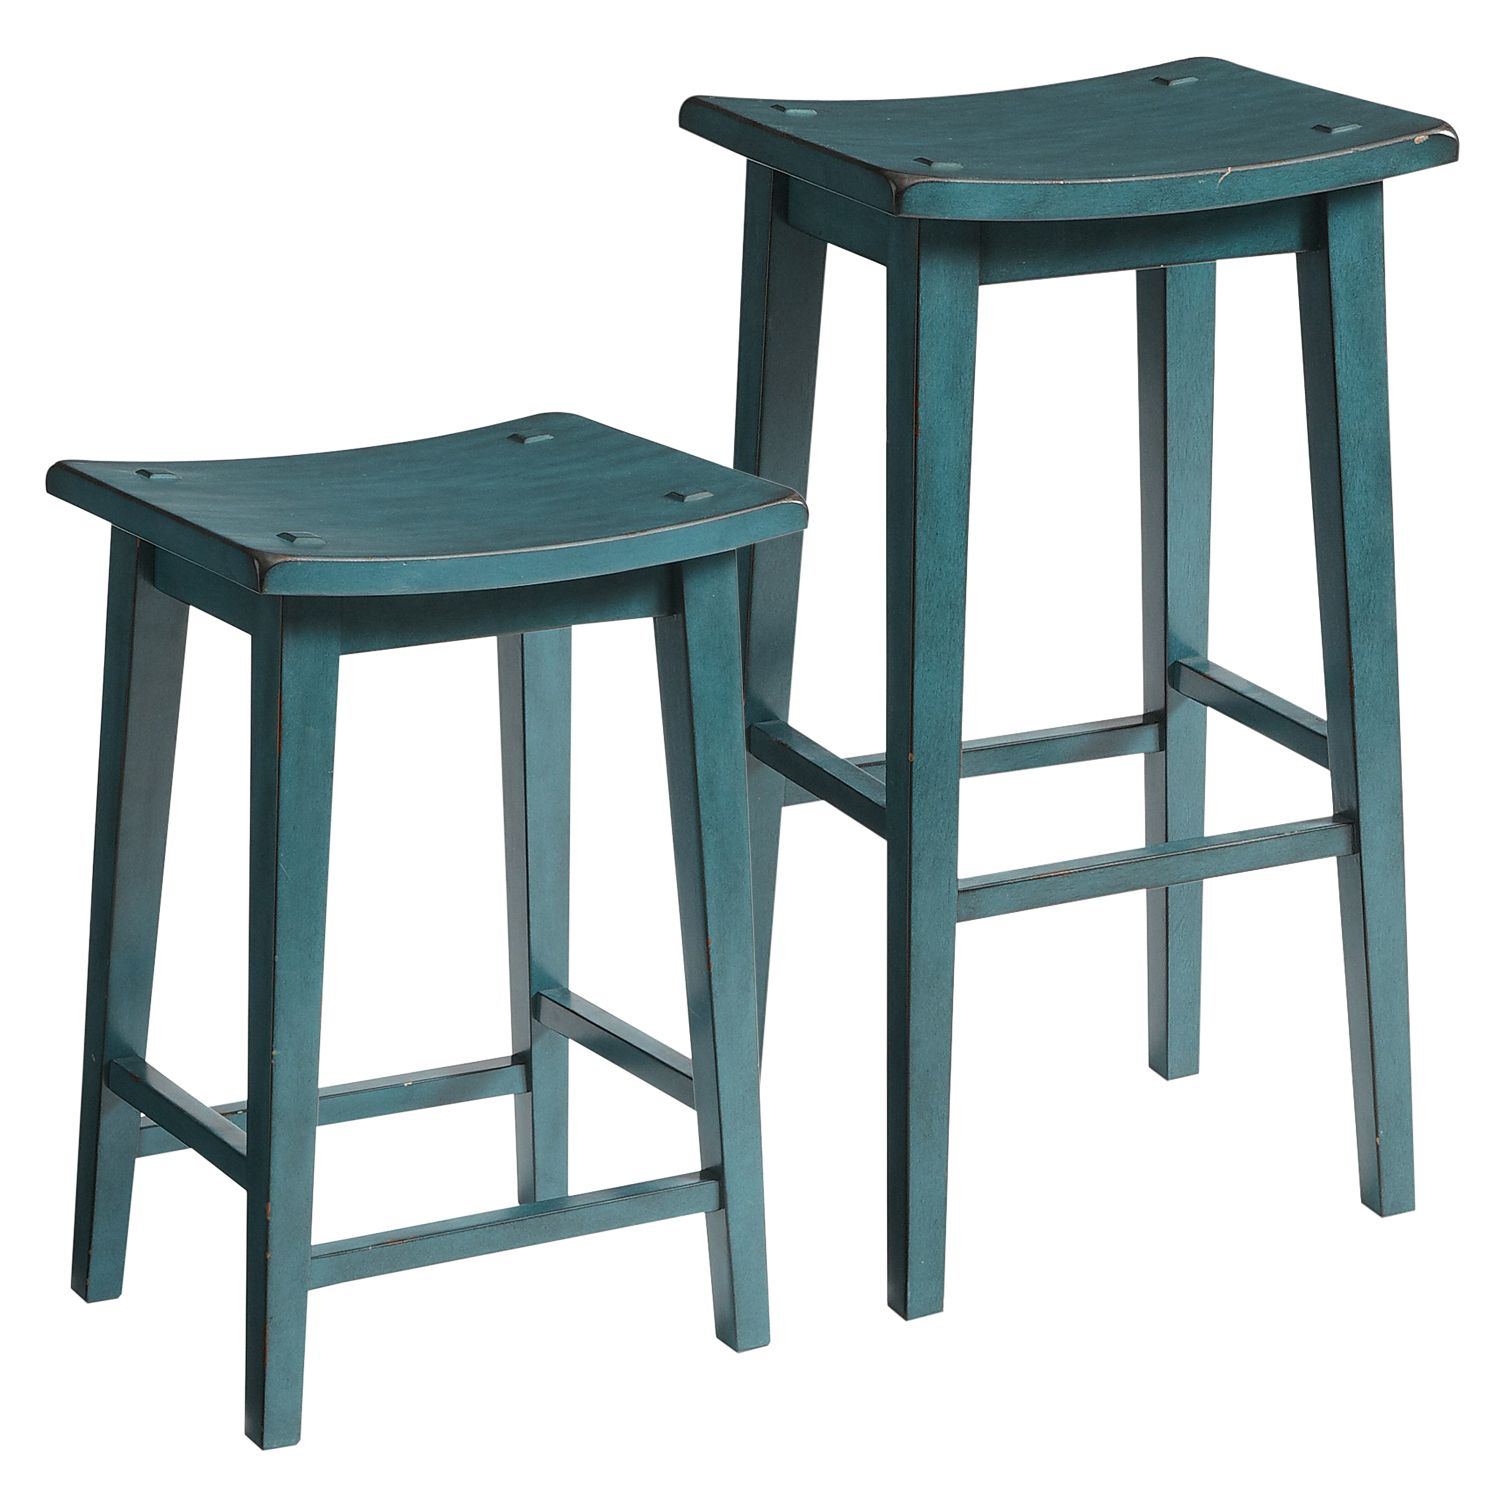 Best 25 Dining Stools Ideas On Pinterest Bar Stools